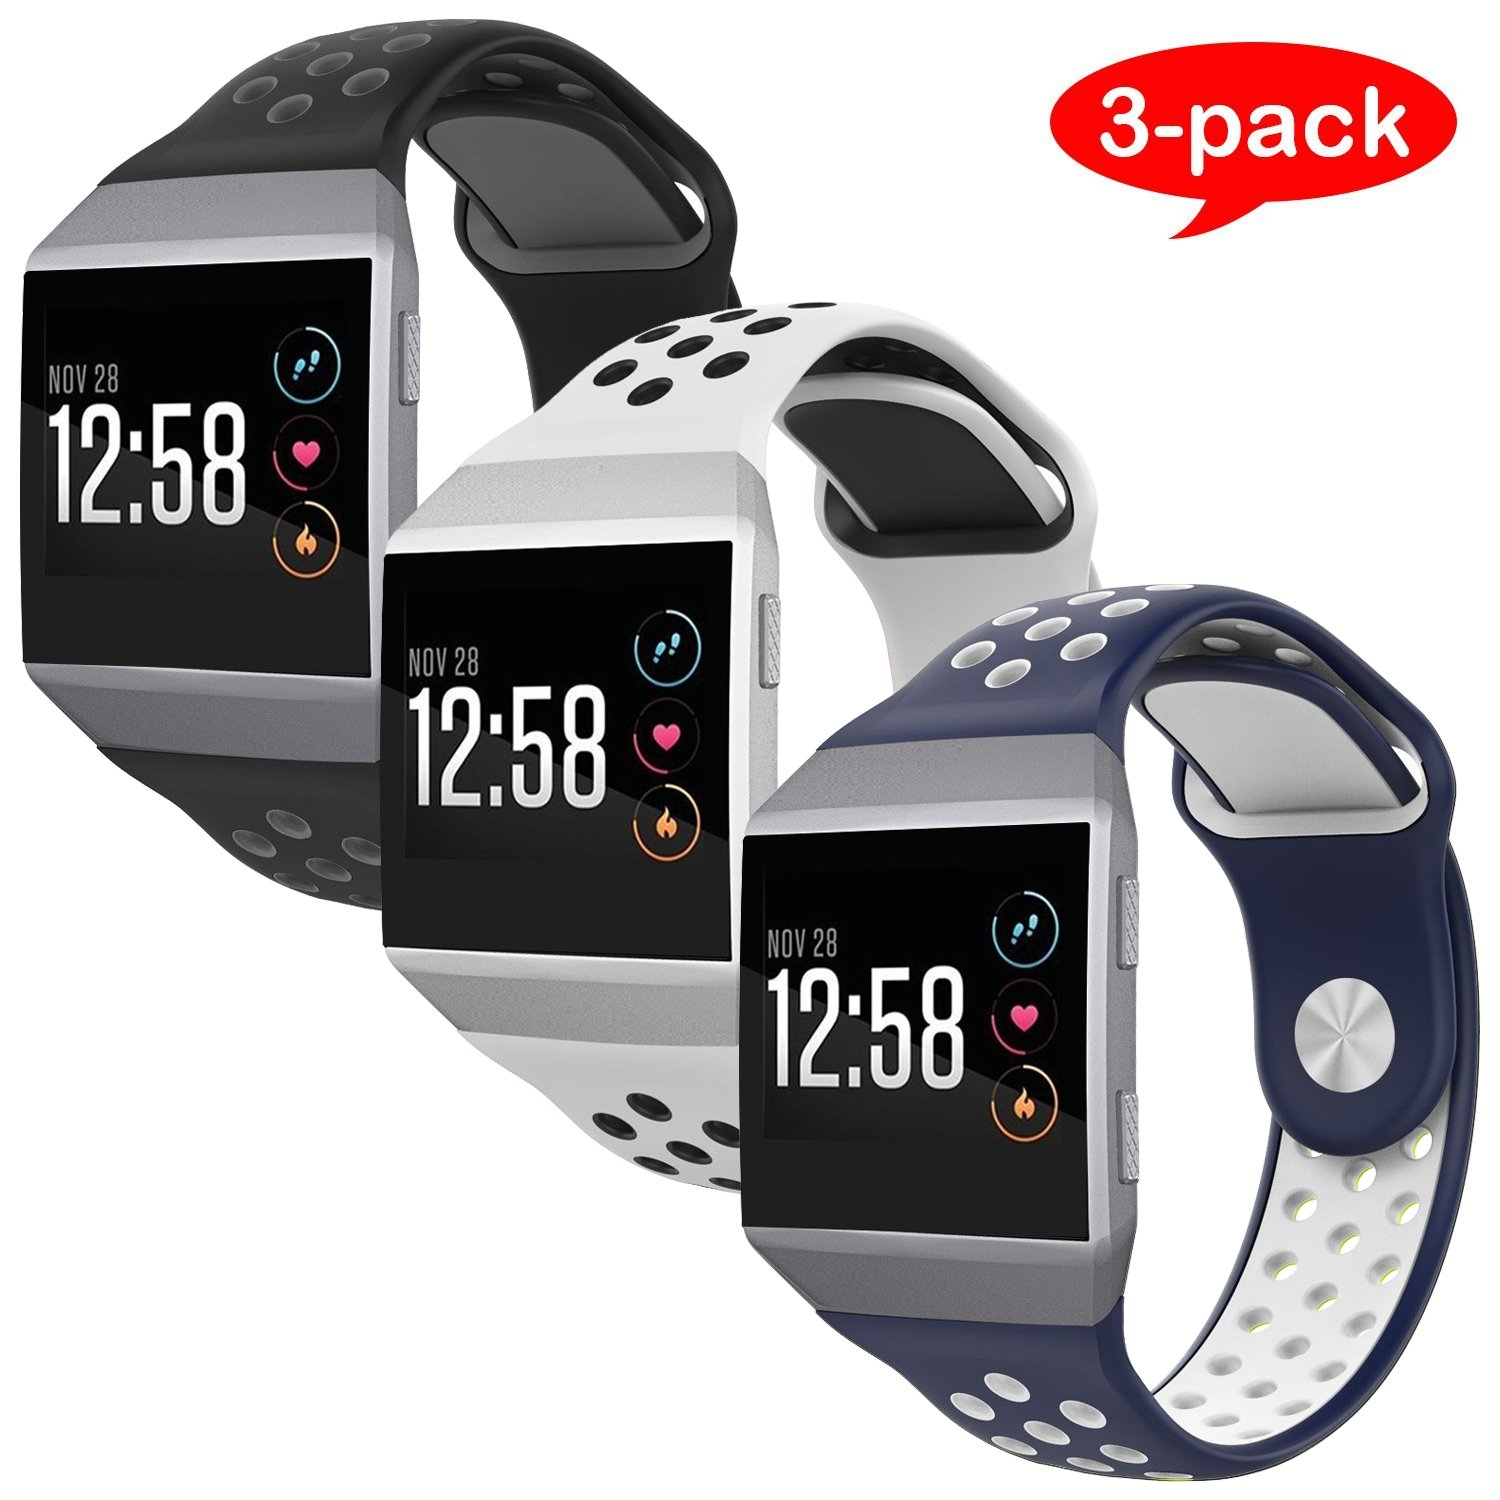 For Fitbit Ionic Bands, VODKE Soft Silicone Replacement Sports watch Bands/Strap/Bracelet/Wristband Accessory For Fitbit Ionic Men Women Small Pack of 3pcs Type 2